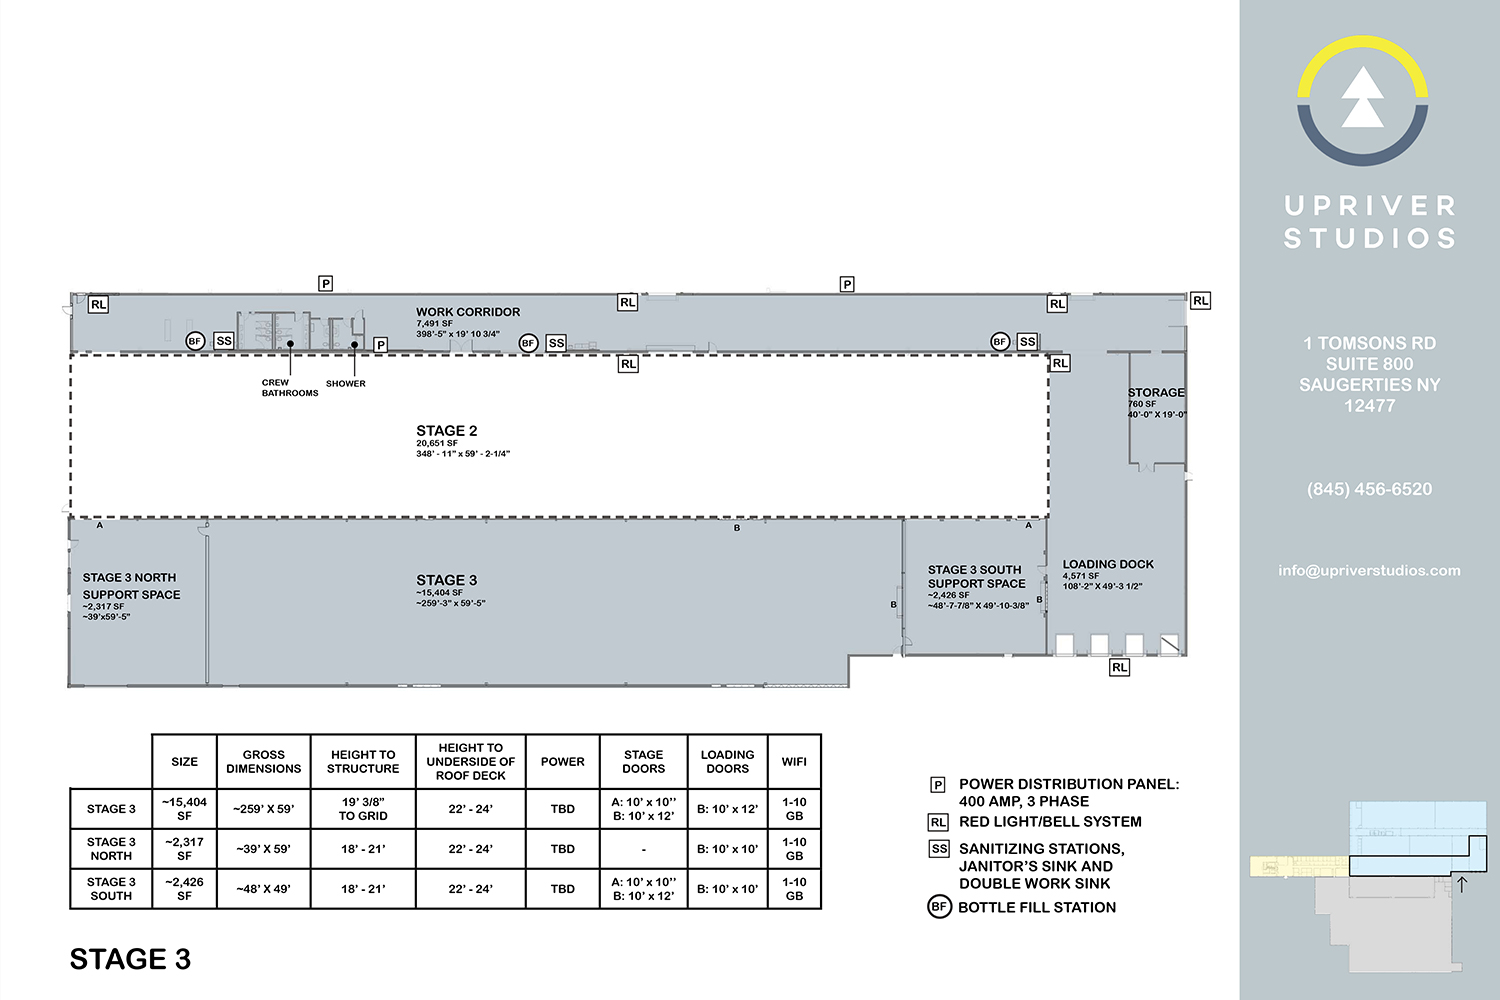 Upriver Studios owned by Masteron, Davenport and Wheeler-Nicholson. WSDG acoustic consulting. Stage 3 drawings and specifications.